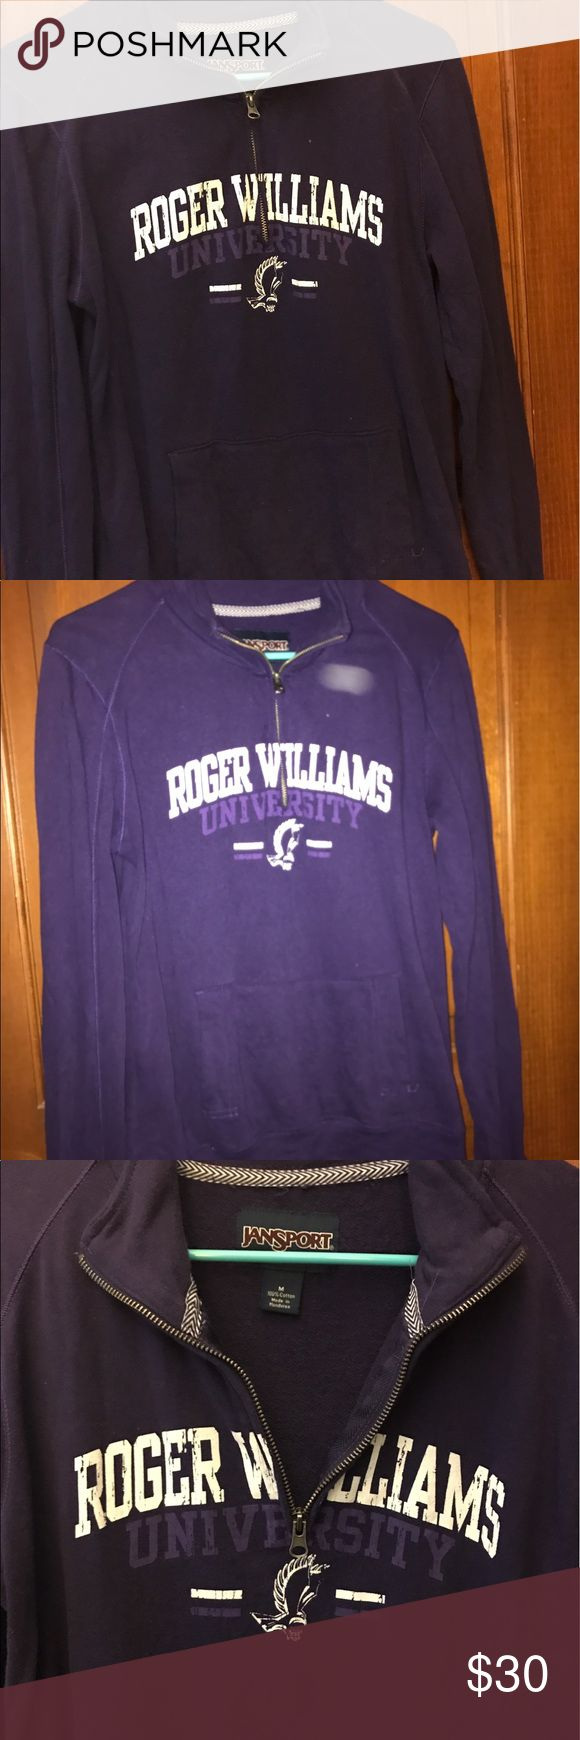 Half Zip Sweatshirt This is a purple Roger Williams university half zip hoodie. Women's size Medium. Only worn once and it doesn't fit anymore. Perfect condition, make me an offer. Sweaters